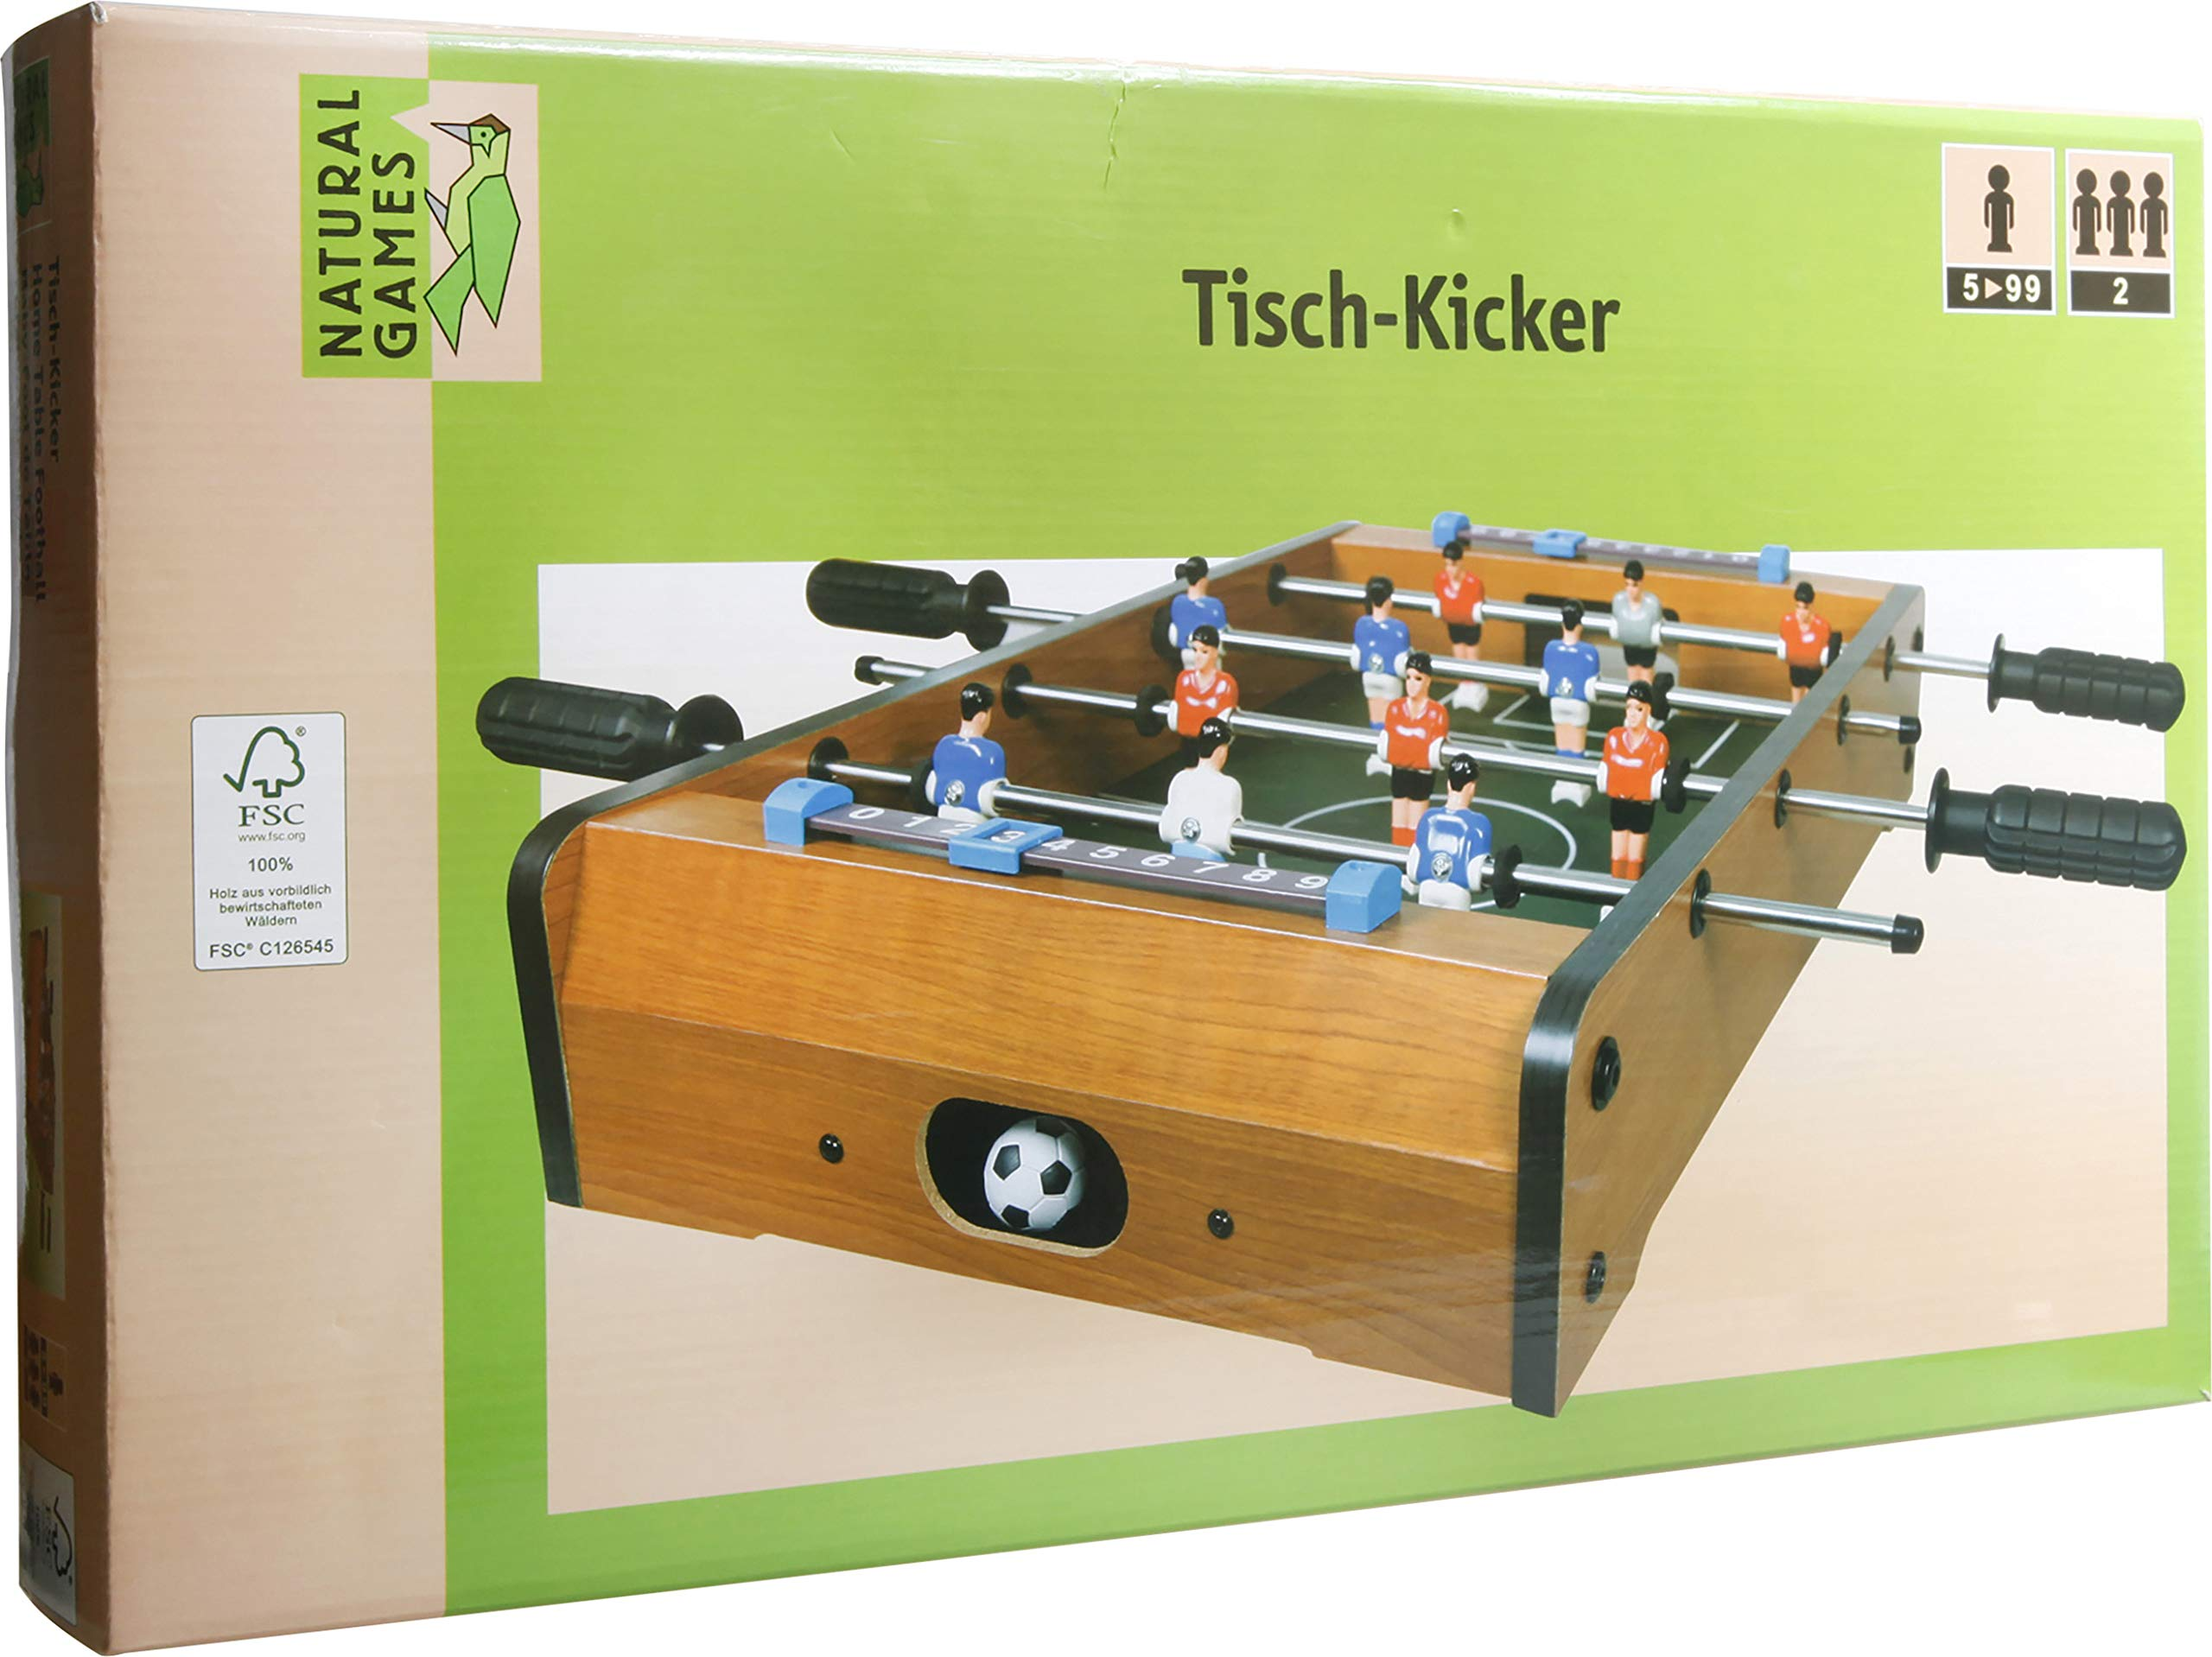 VEDES Großhandel GmbH - Ware Natural Games Football Table 50 x 50 x 9.5 cm